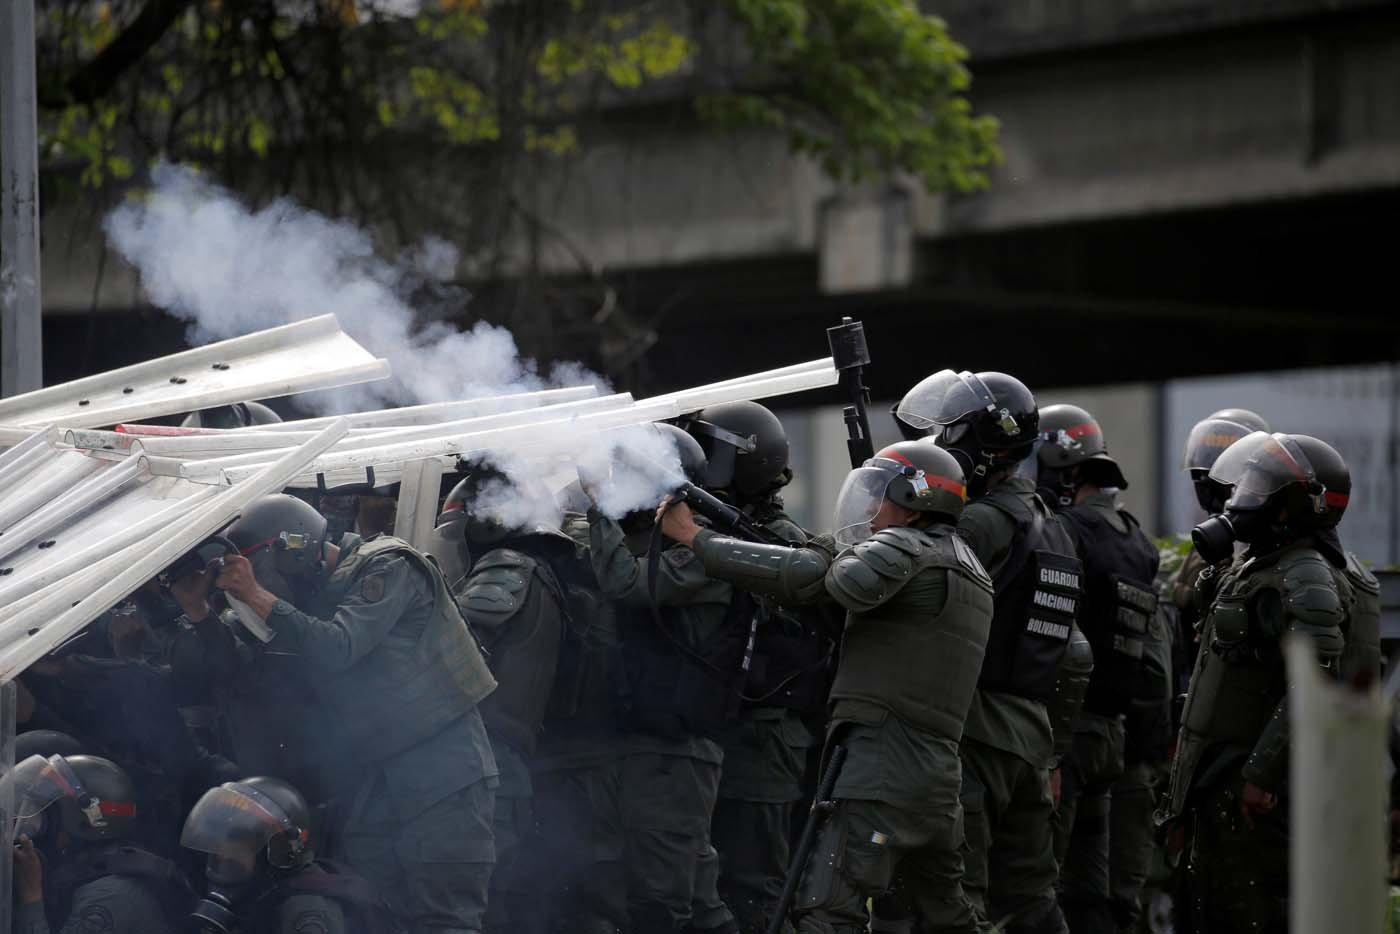 Riot security forces take position while clashing with demonstrators rallying against President Nicolas Maduro in Caracas, Venezuela, May 24, 2017. REUTERS/Carlos Barria